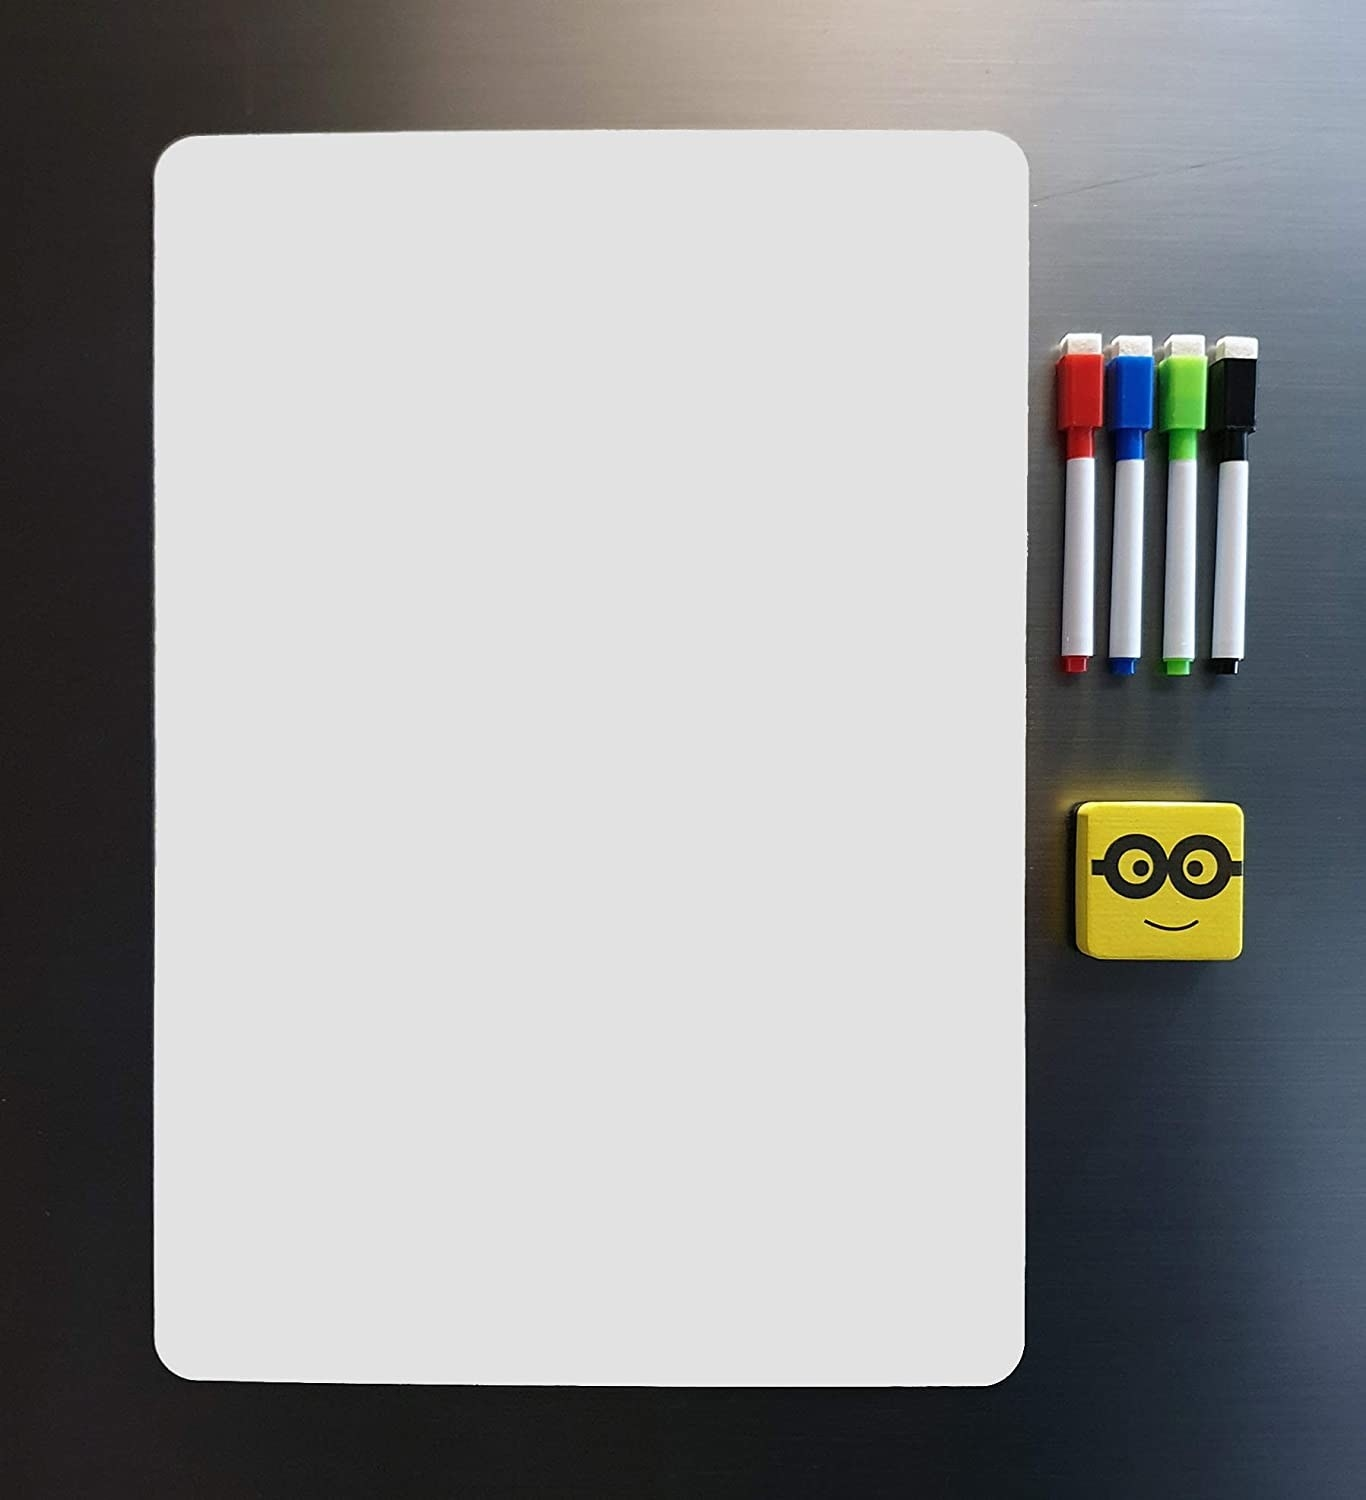 A magnetic board with pens on it